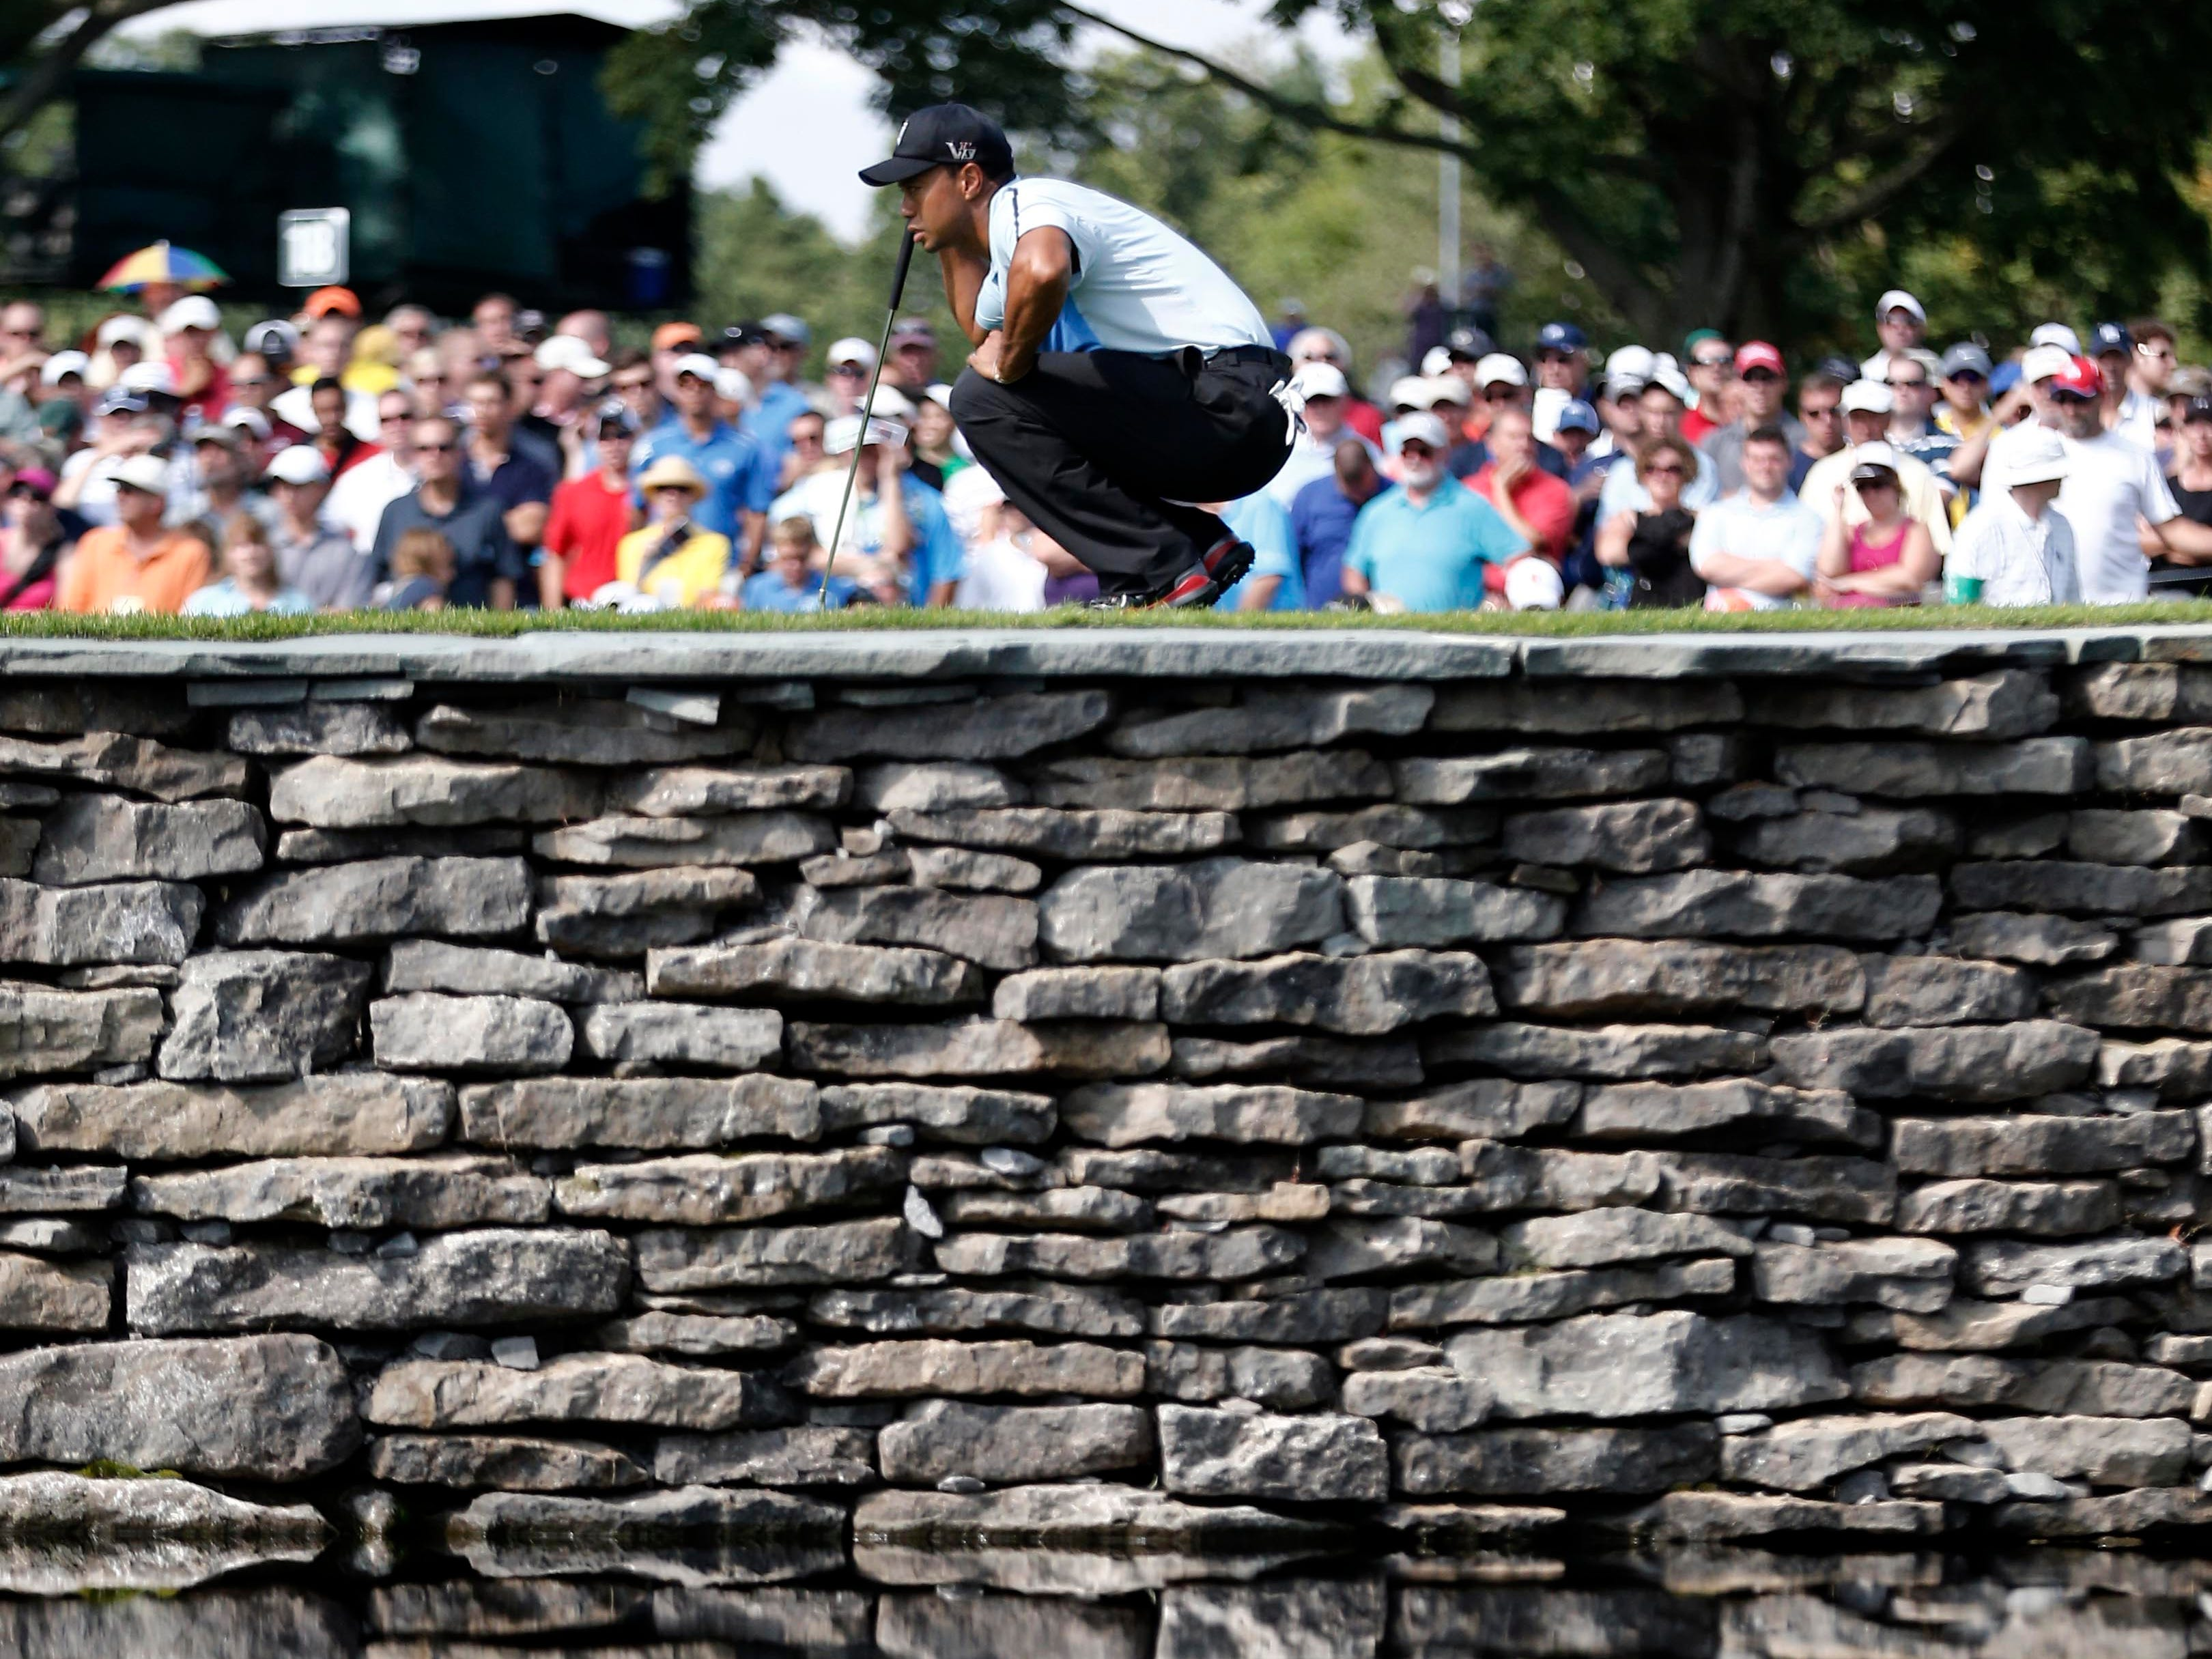 Tiger Woods looks at his birdie putt on the 15th green during the first round of the 95th PGA Championship at Oak Hill Country Club.